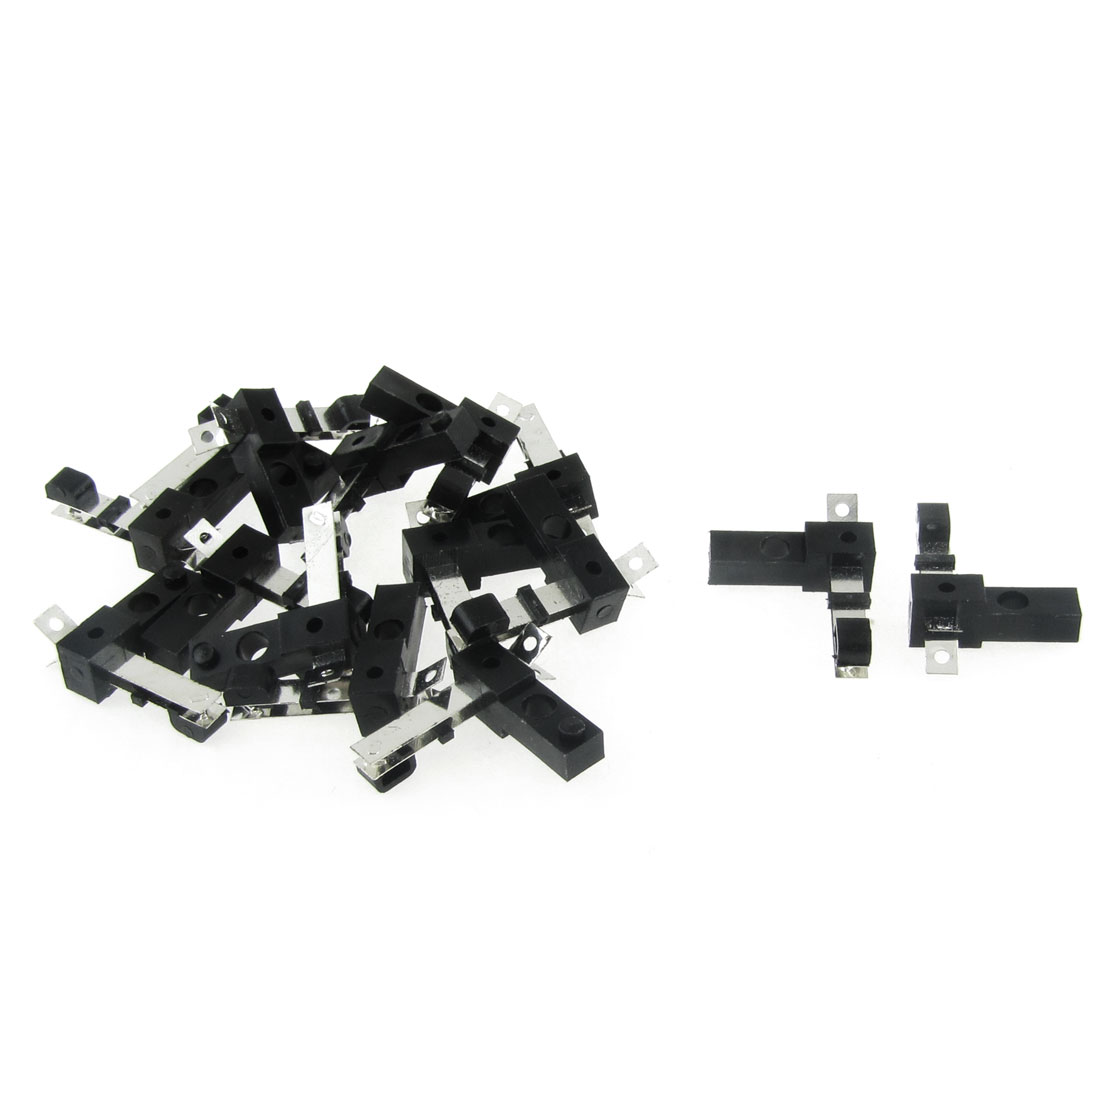 15 Pcs CS-26A-1 DC 16V 1A 1P1T Leaf Switch for Electric Toy